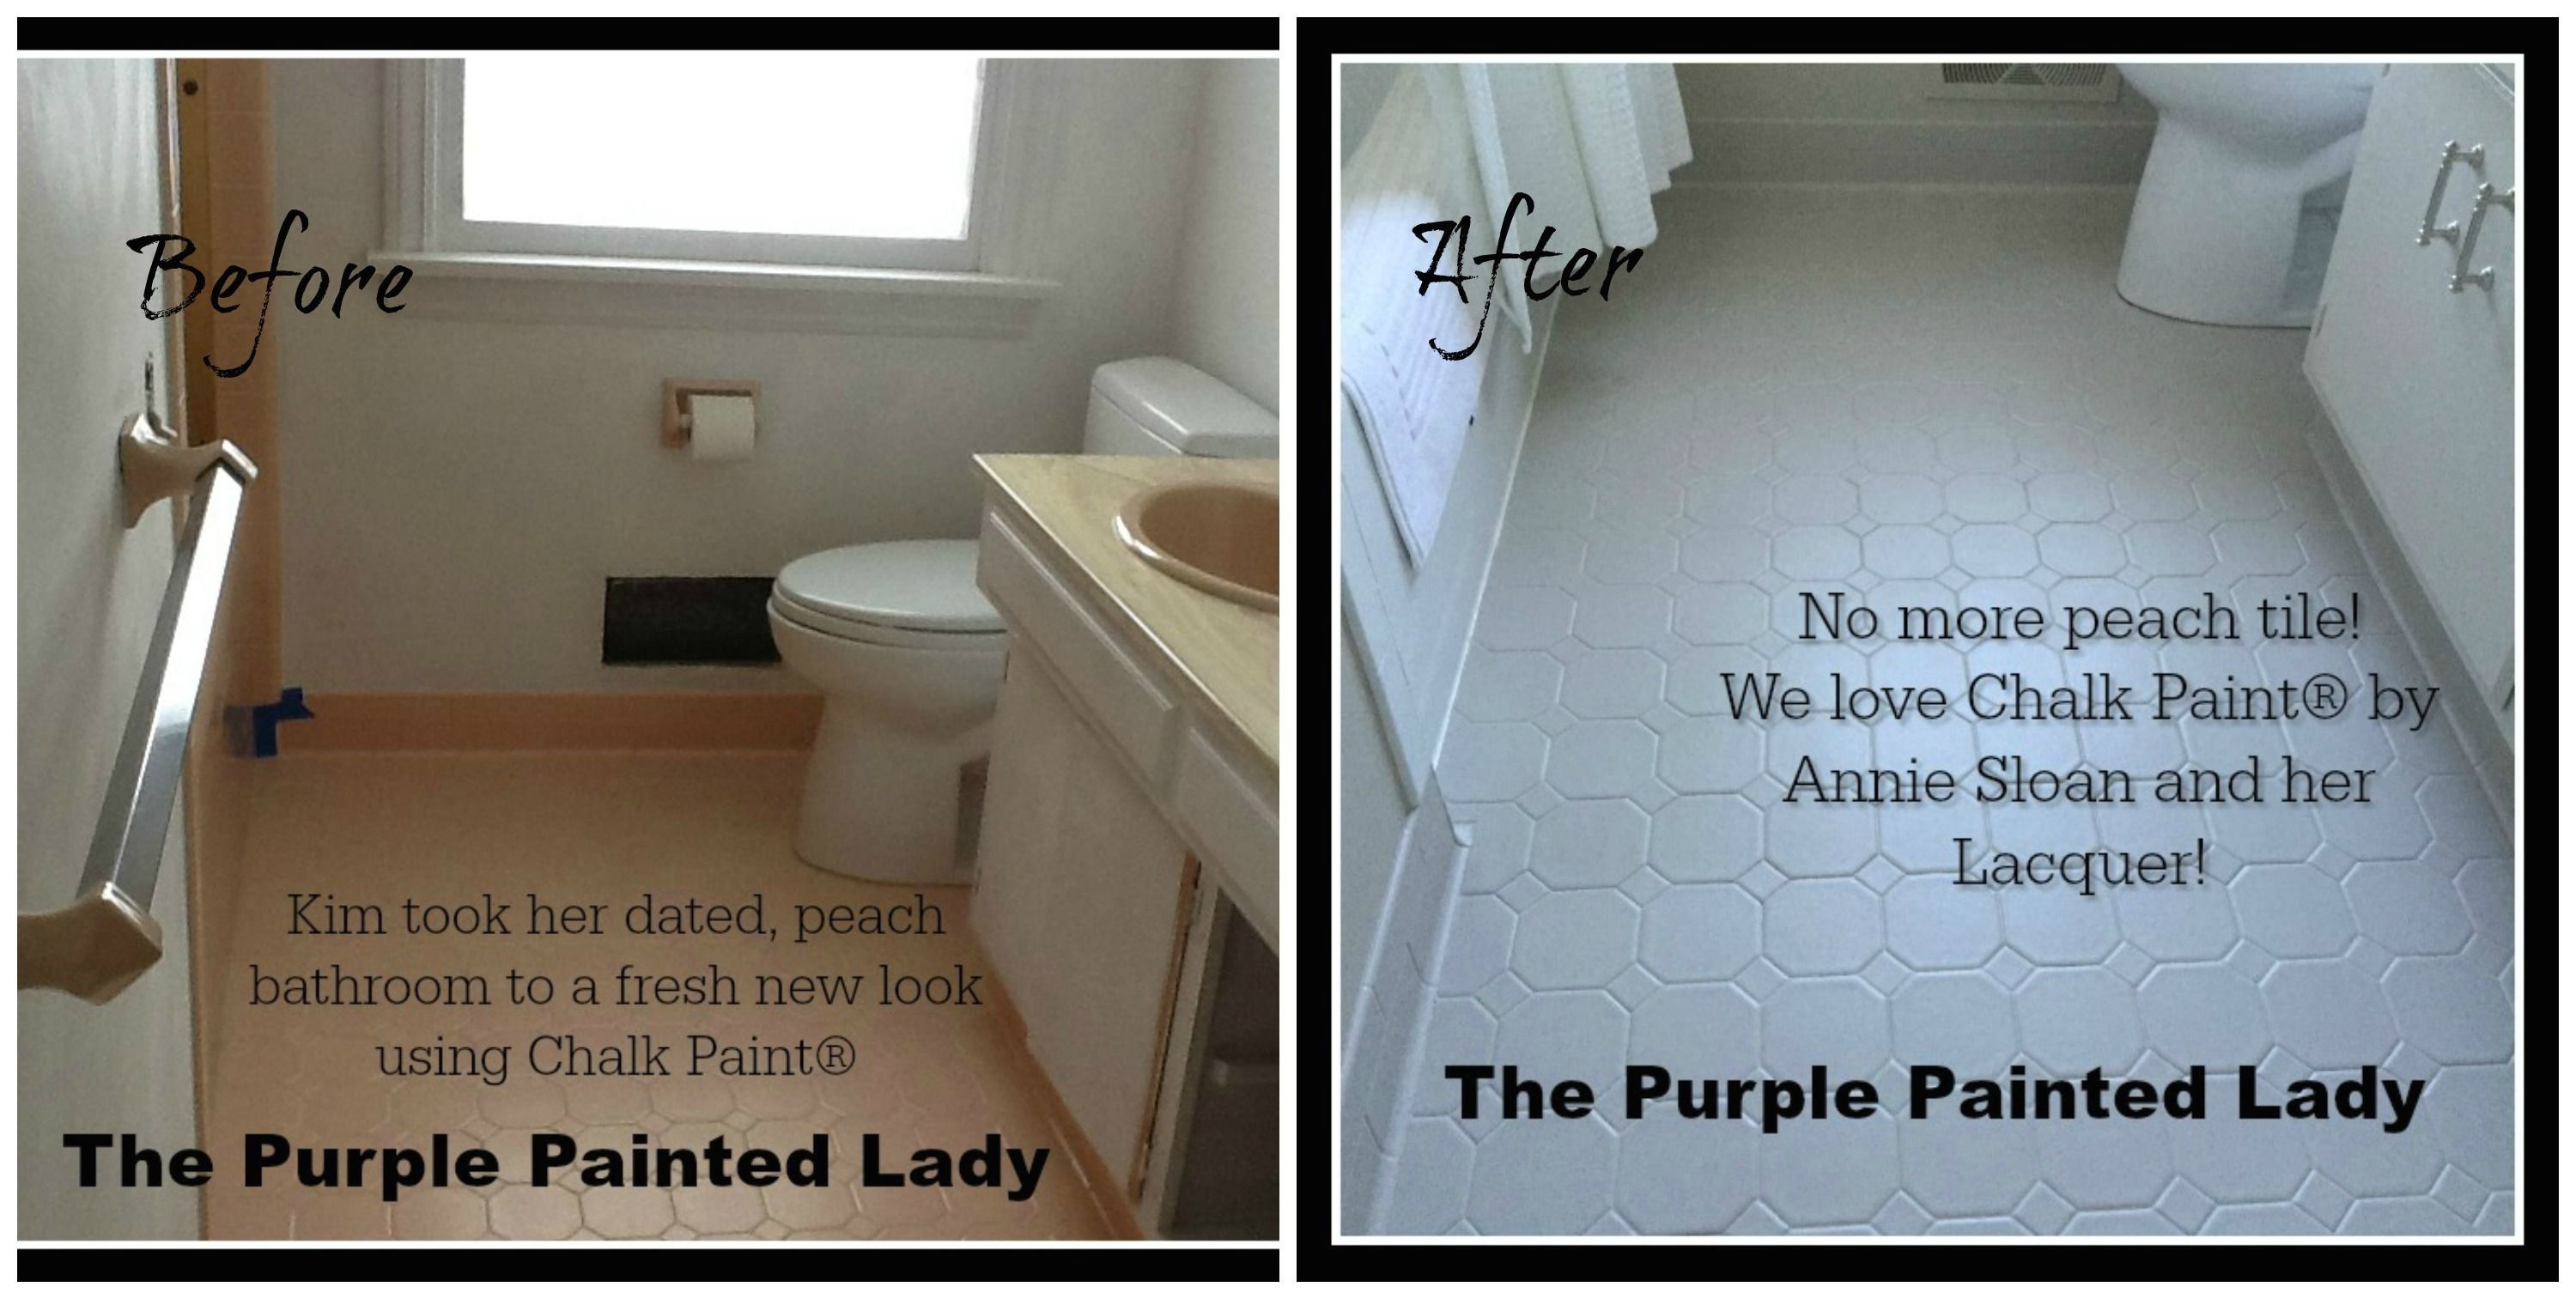 Painting Tile In The Bathroom With Chalk Paint 1000 In 2020 Painting Bathroom Tiles Painted Bathroom Floors Painting Tile